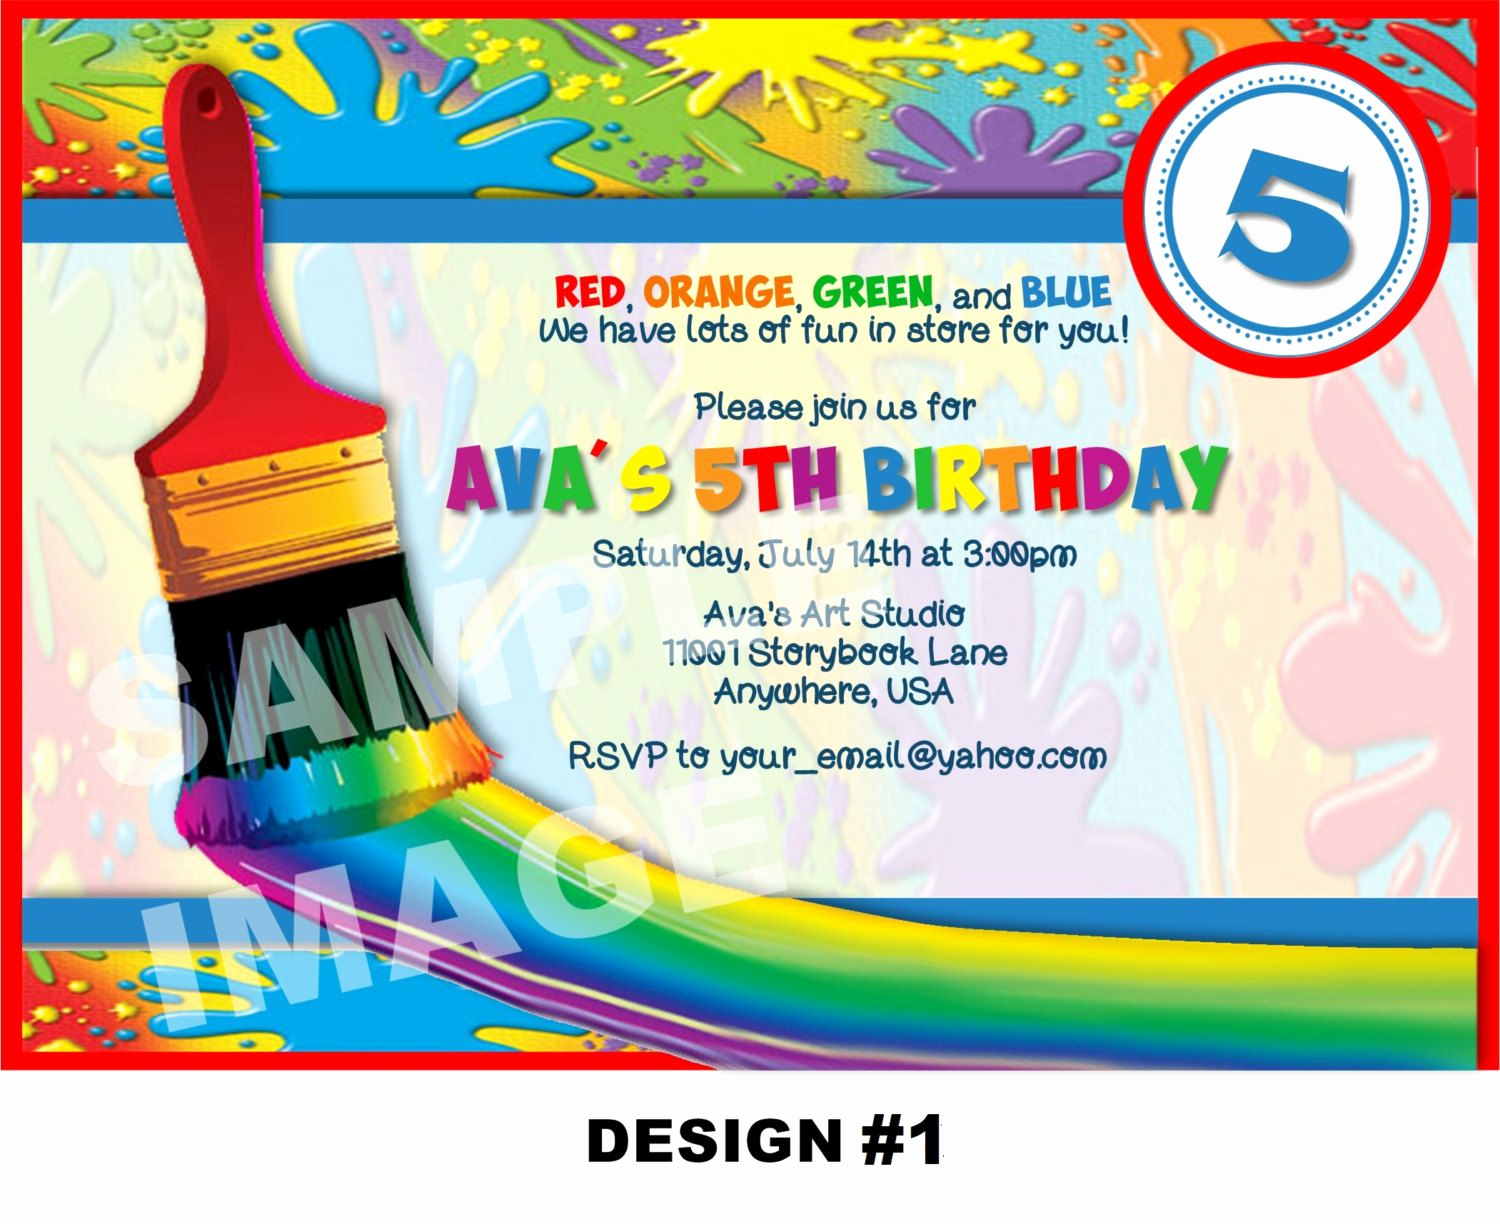 Paint Palette Invitation Template Awesome Art Party Invitation Art Invitation Painting Birthday